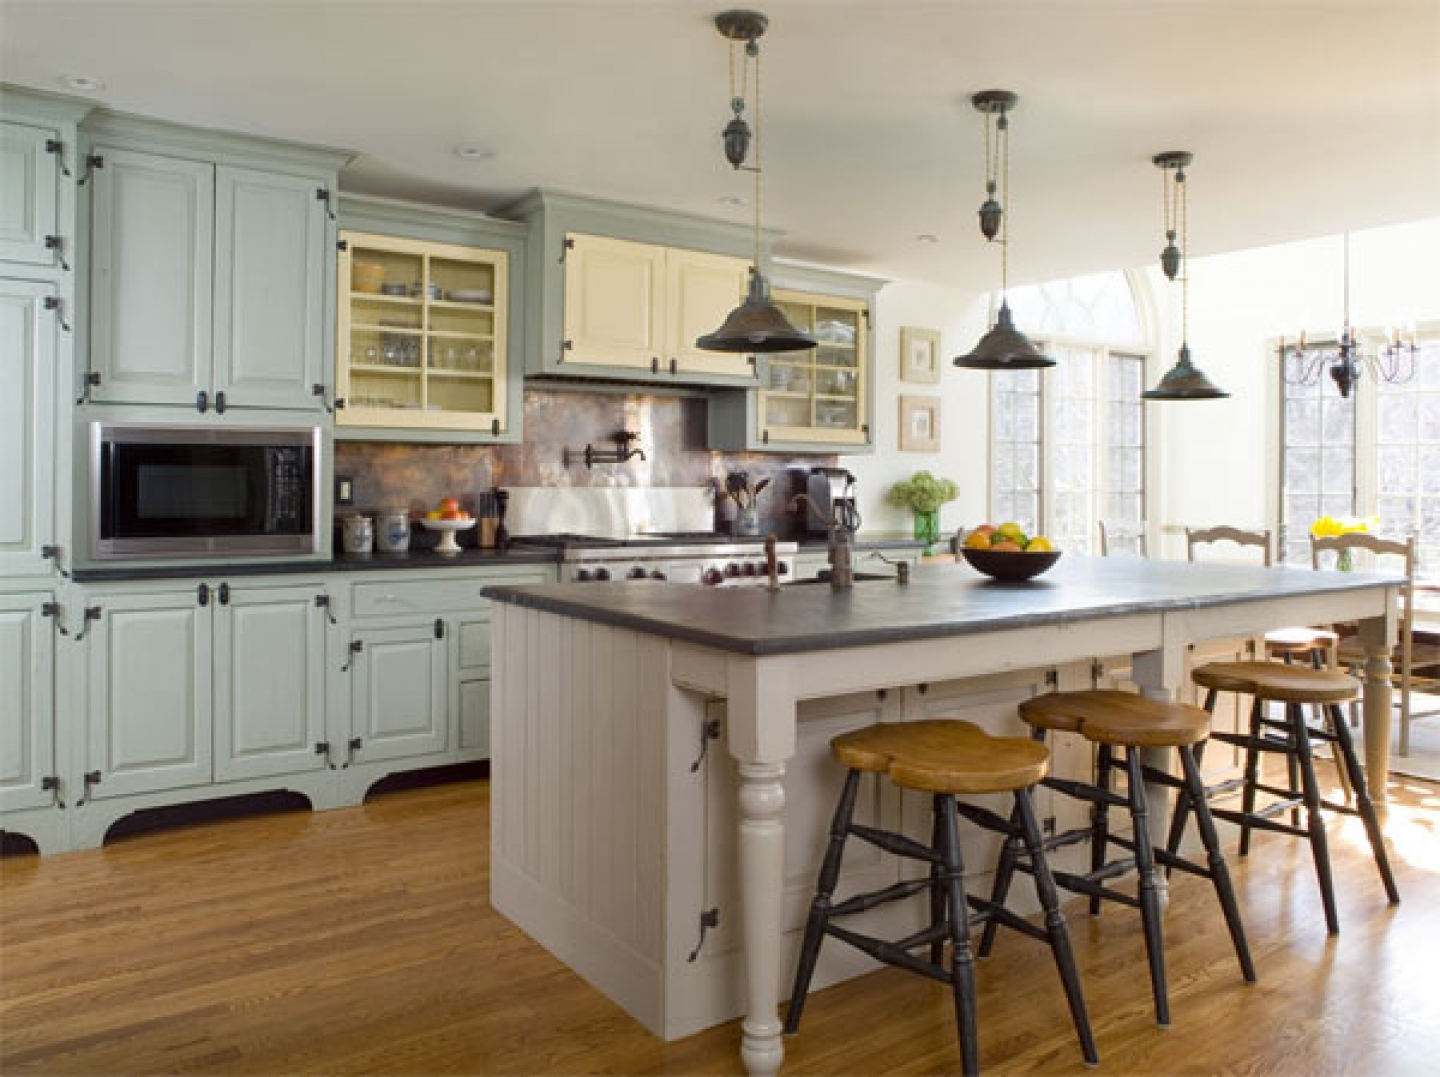 Modern kitchen with a vintage flair pictures photos and for Modern country kitchen design ideas